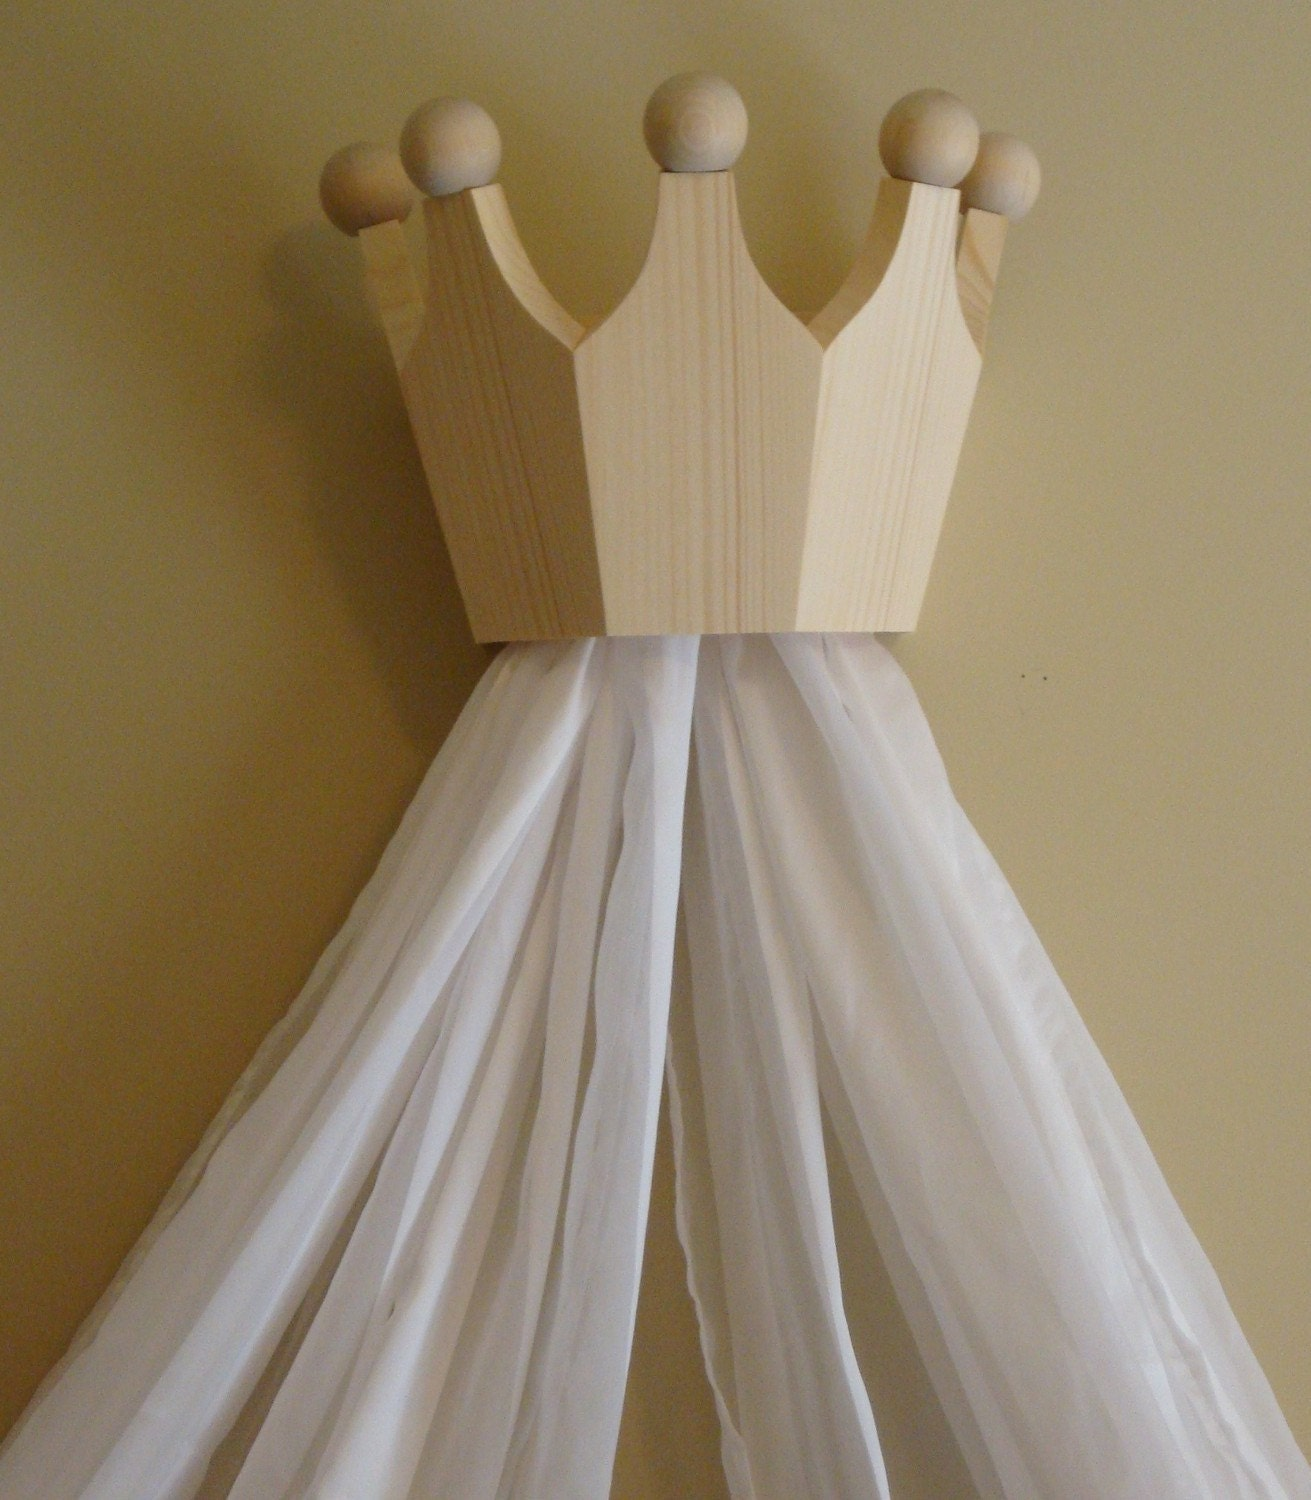 Princess Bed Canopy Girl Crown Pelmet Upholstered Awning: Princess Bed Crown / Valance / Canopy / Cornice For Nursery